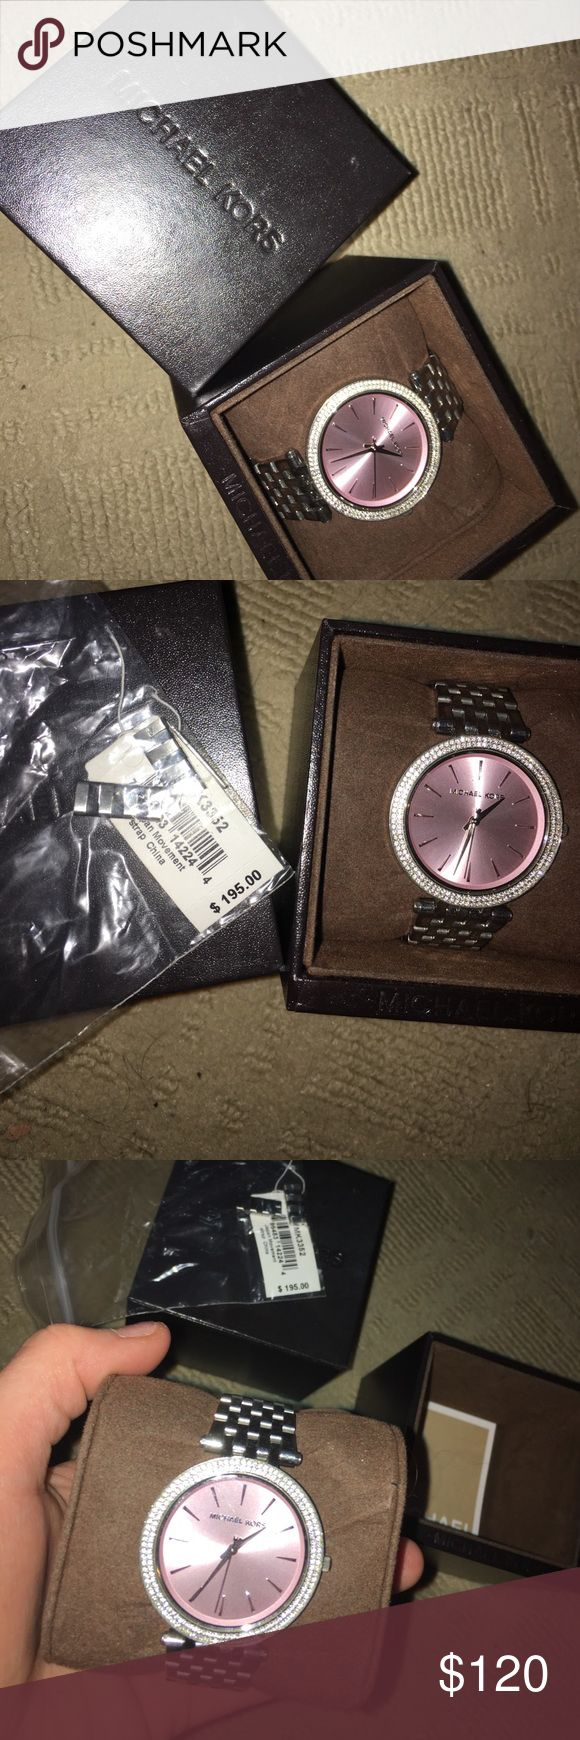 Women's Michael Kors Darci Watch NWT!!! Received as a Christmas present and I have never worn the watch, it is brand new and has the tags still in the box. Michael Kors Accessories Watches